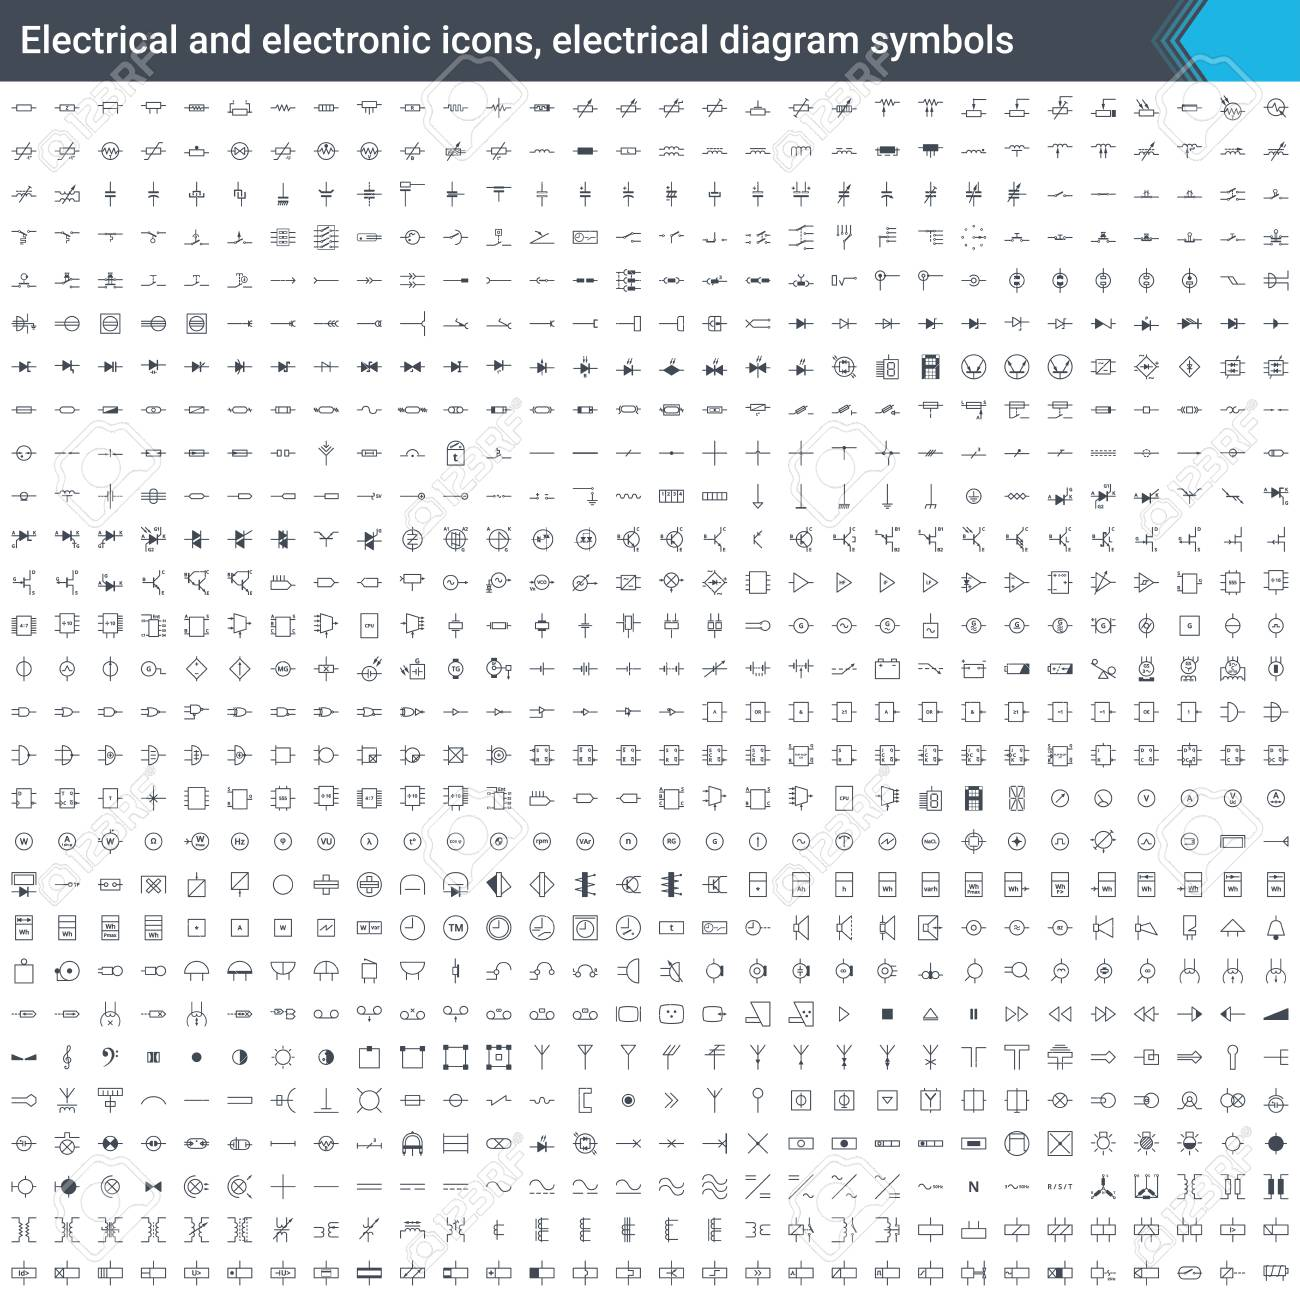 electrical and electronic icons, electrical diagram symbols  circuit diagram  elements  stoke icons isolated